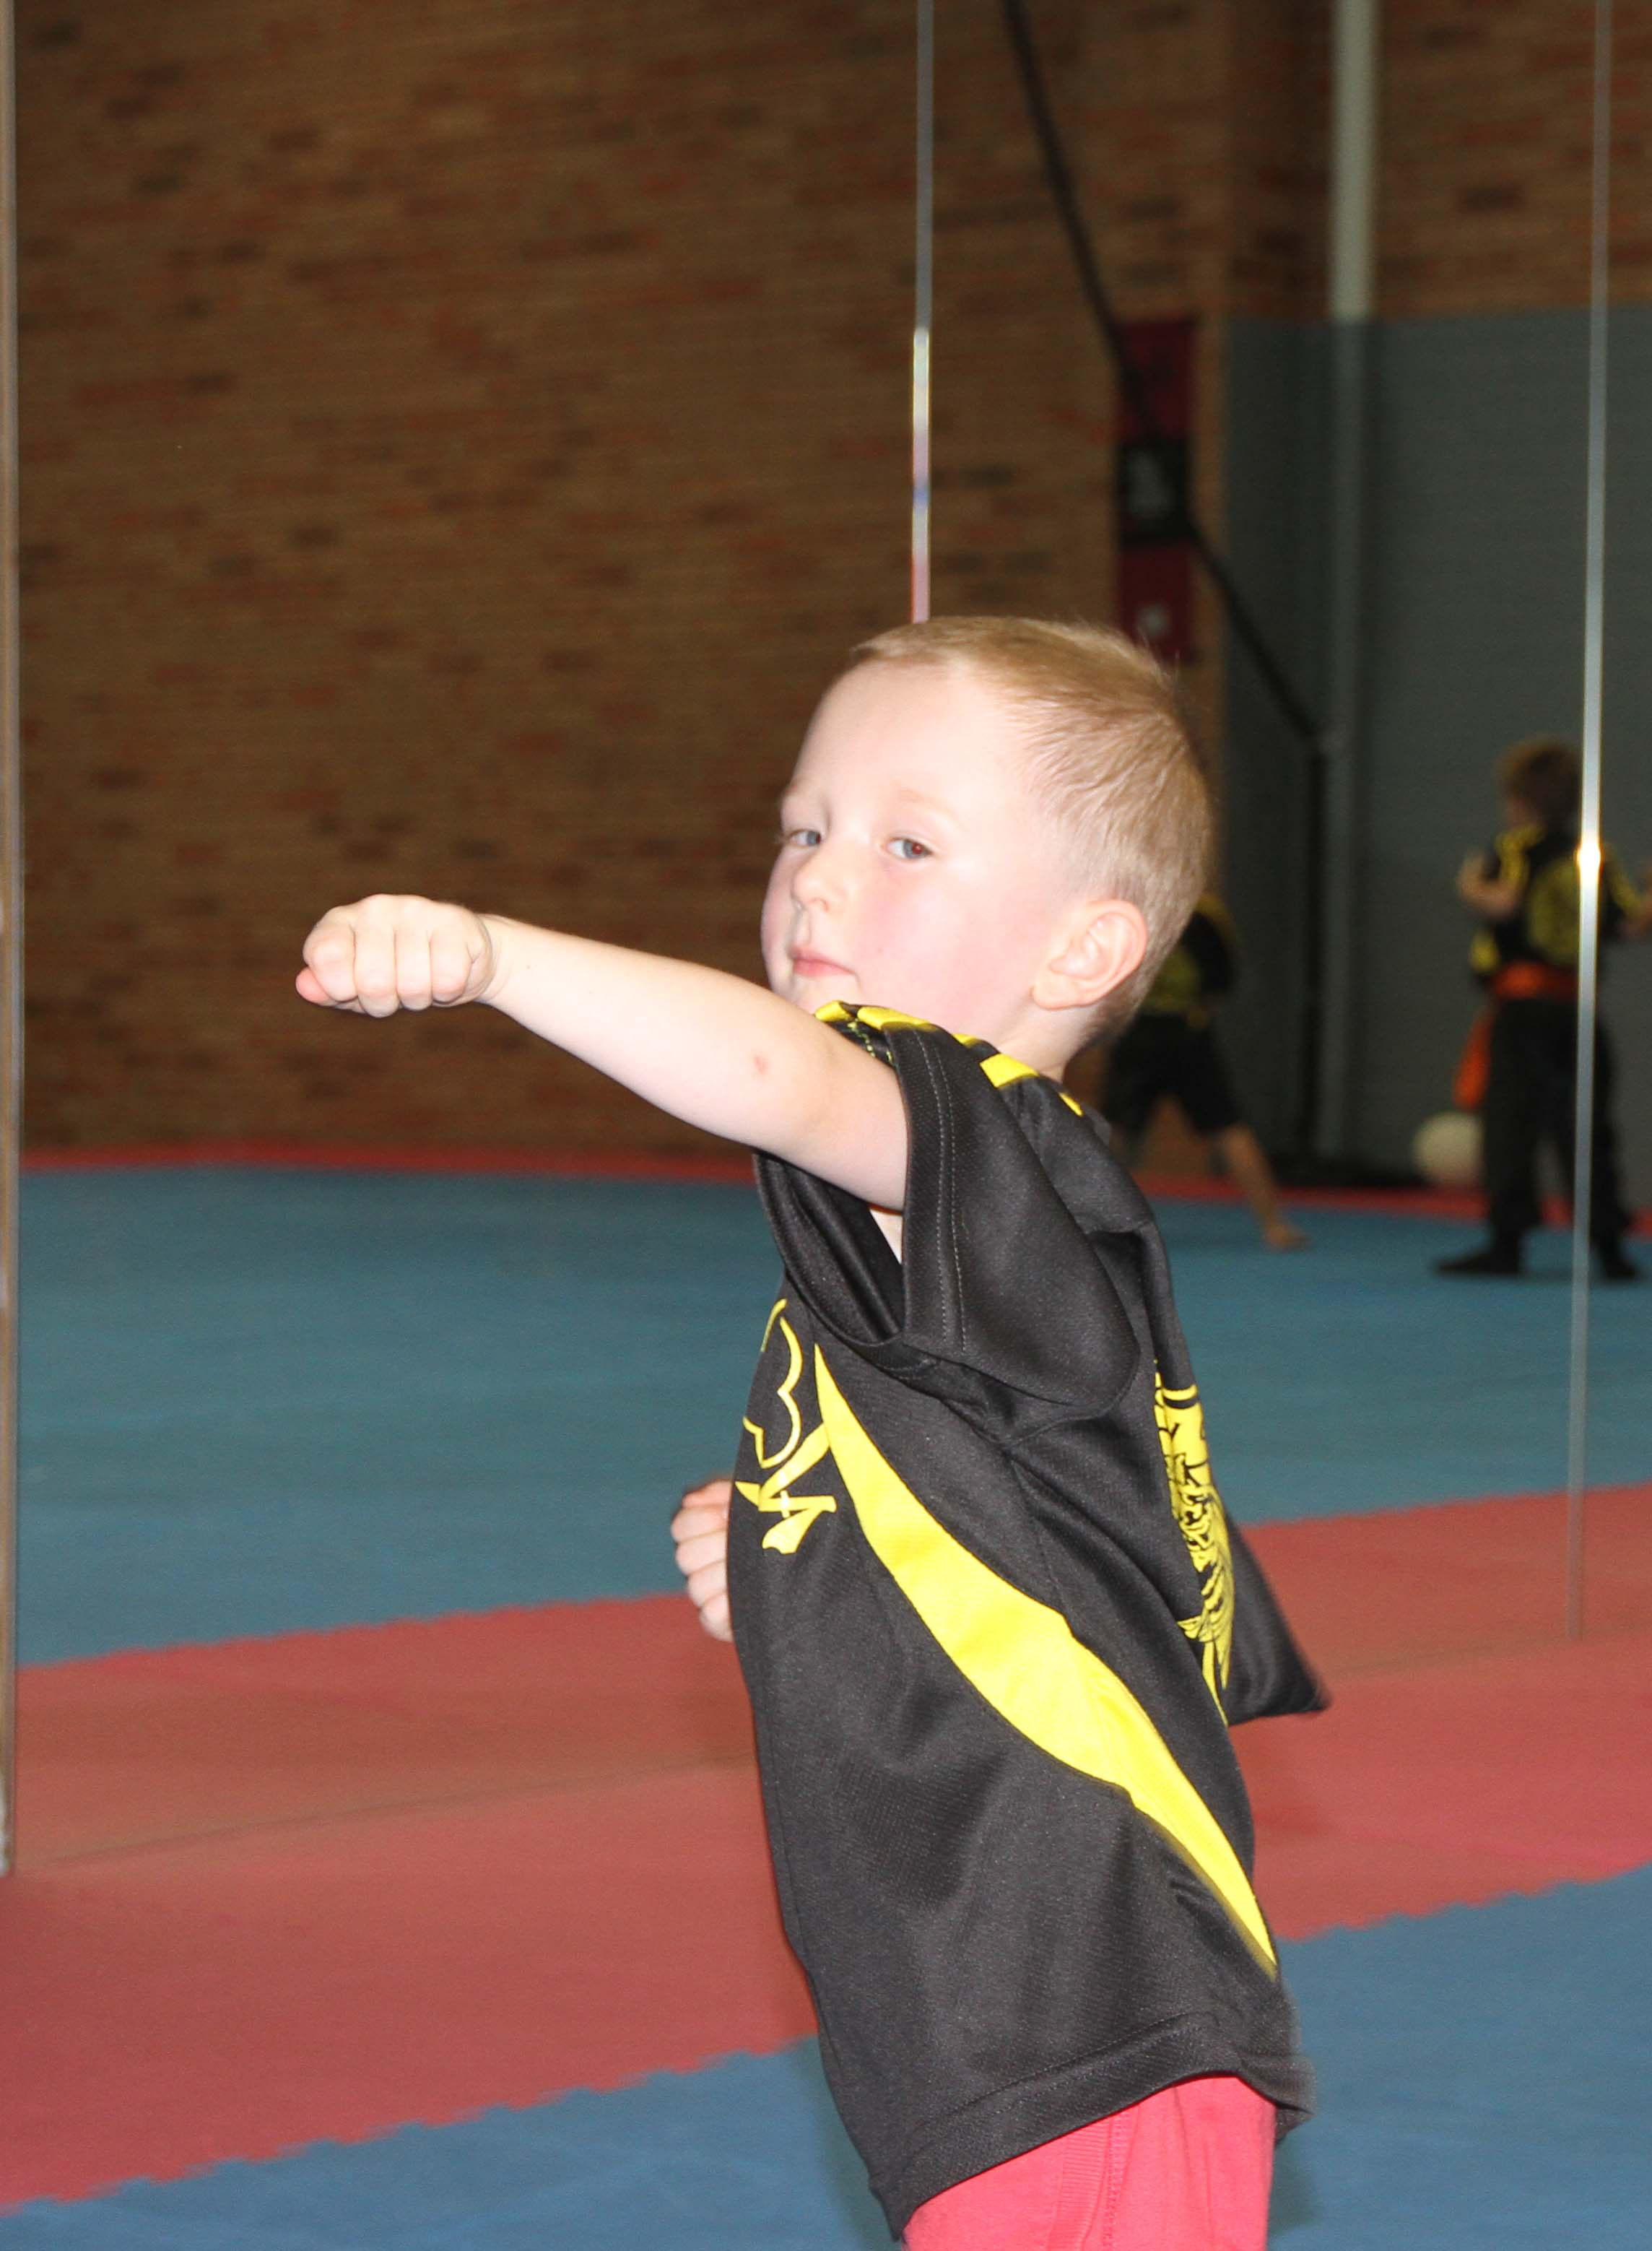 Our Little Tigers Kung Fu Programs focus on discipline, movement, coordination, mobility strength and flexibility while building a foundation for effective self defence.